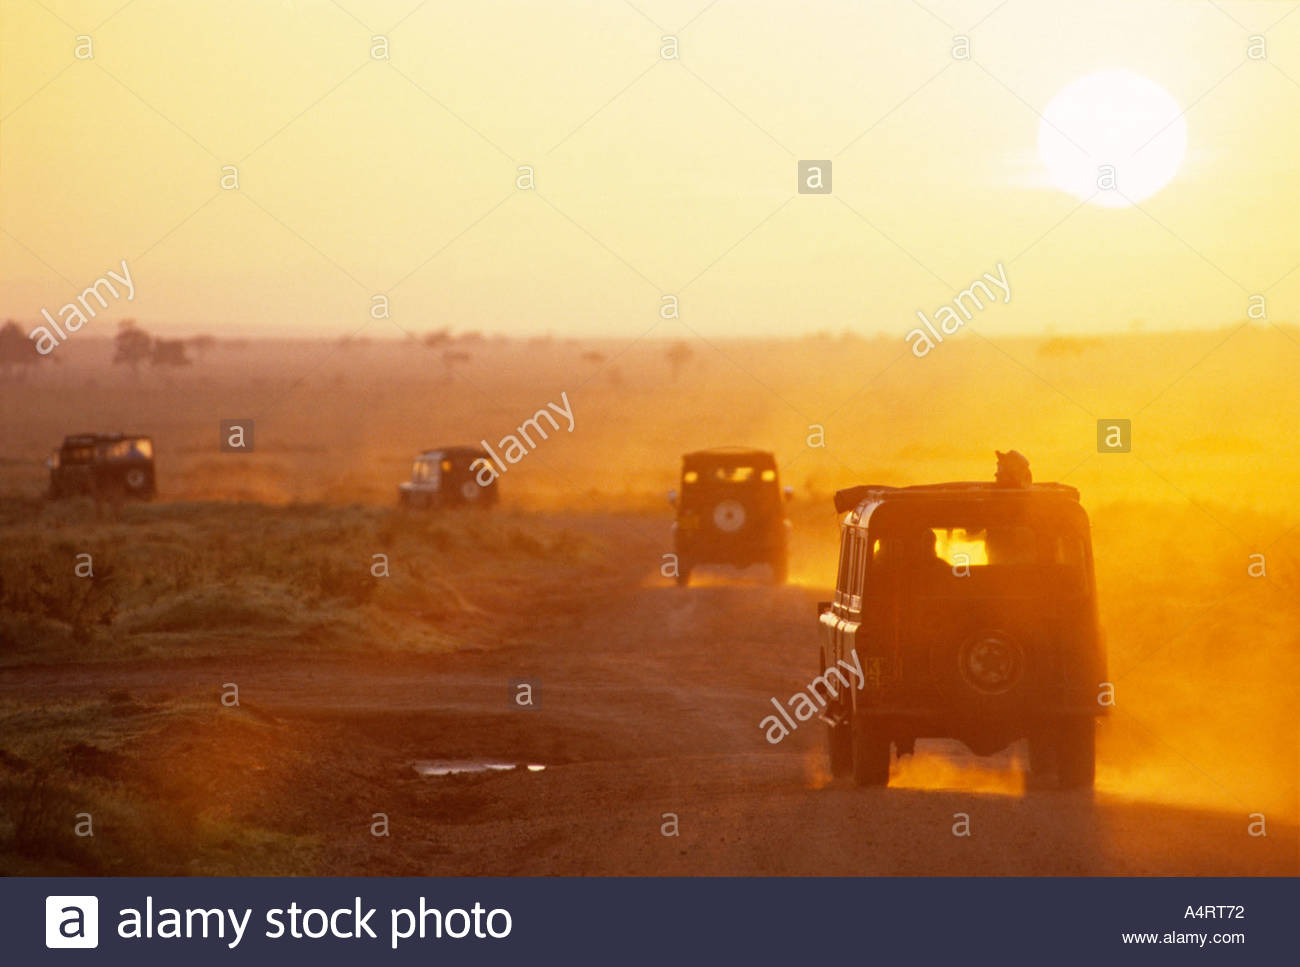 Jeeps departing for early morning game drive from Governors Camp Maasai Mara National Reserve Kenya Africa - Stock Image